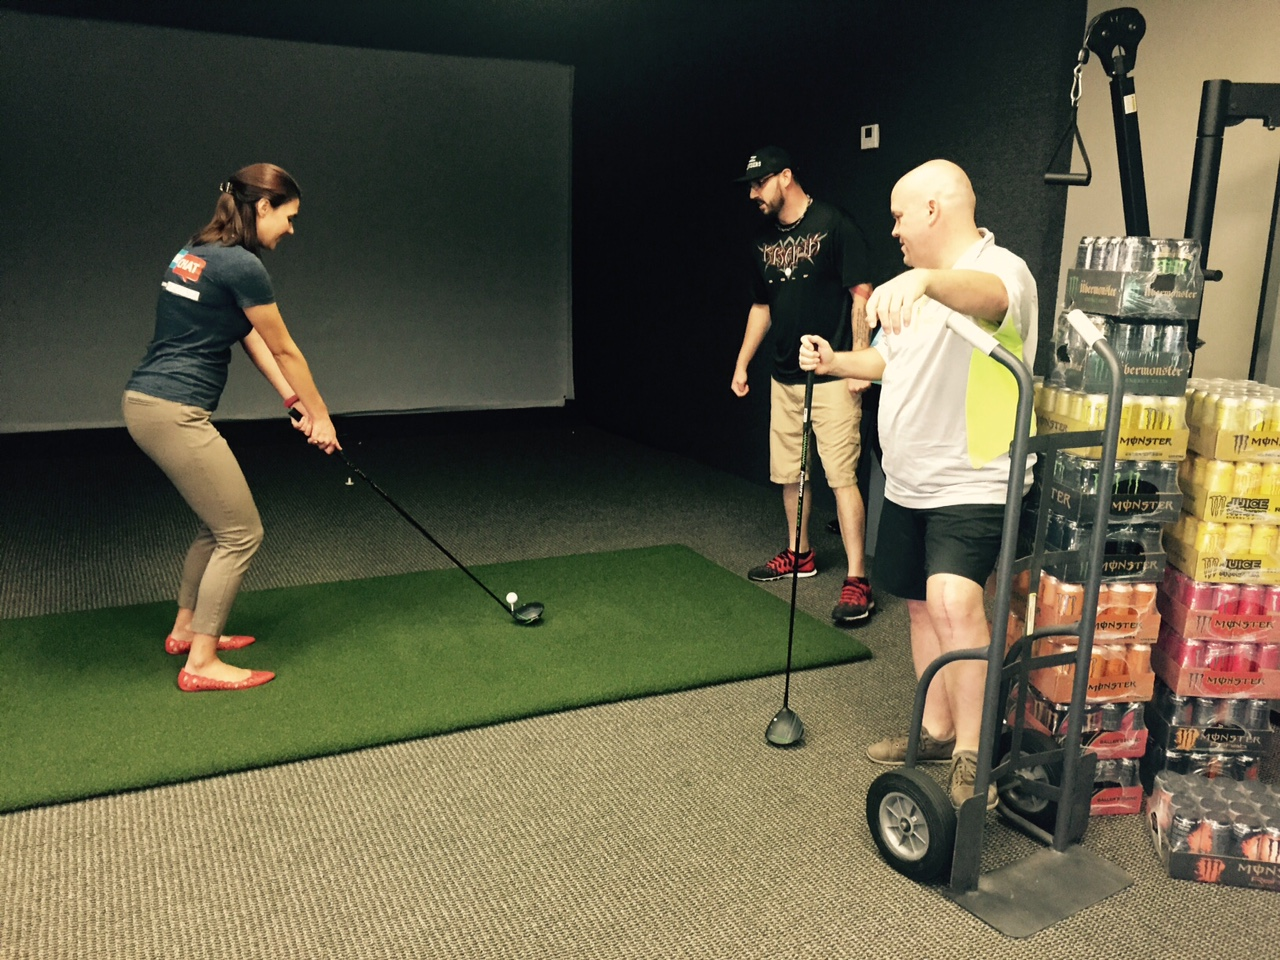 Pure Chat is a Hole in One for Krank Golf